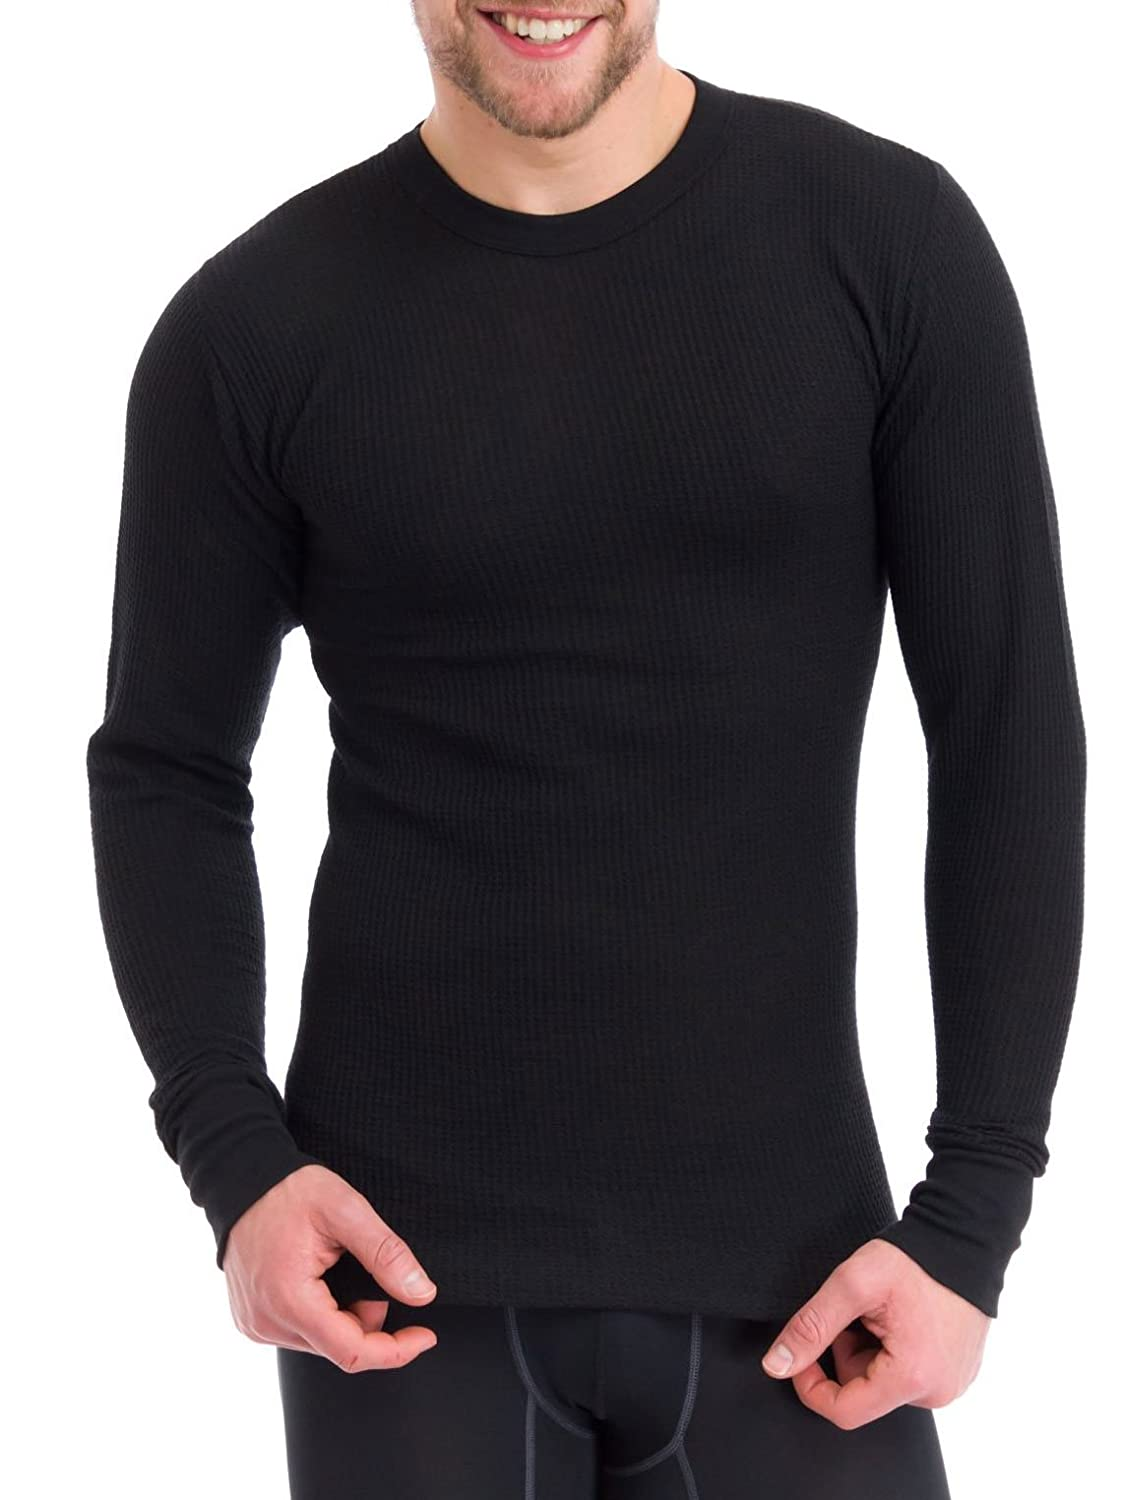 Essential Apparel Men's Old School Waffle Knit Thermal Top